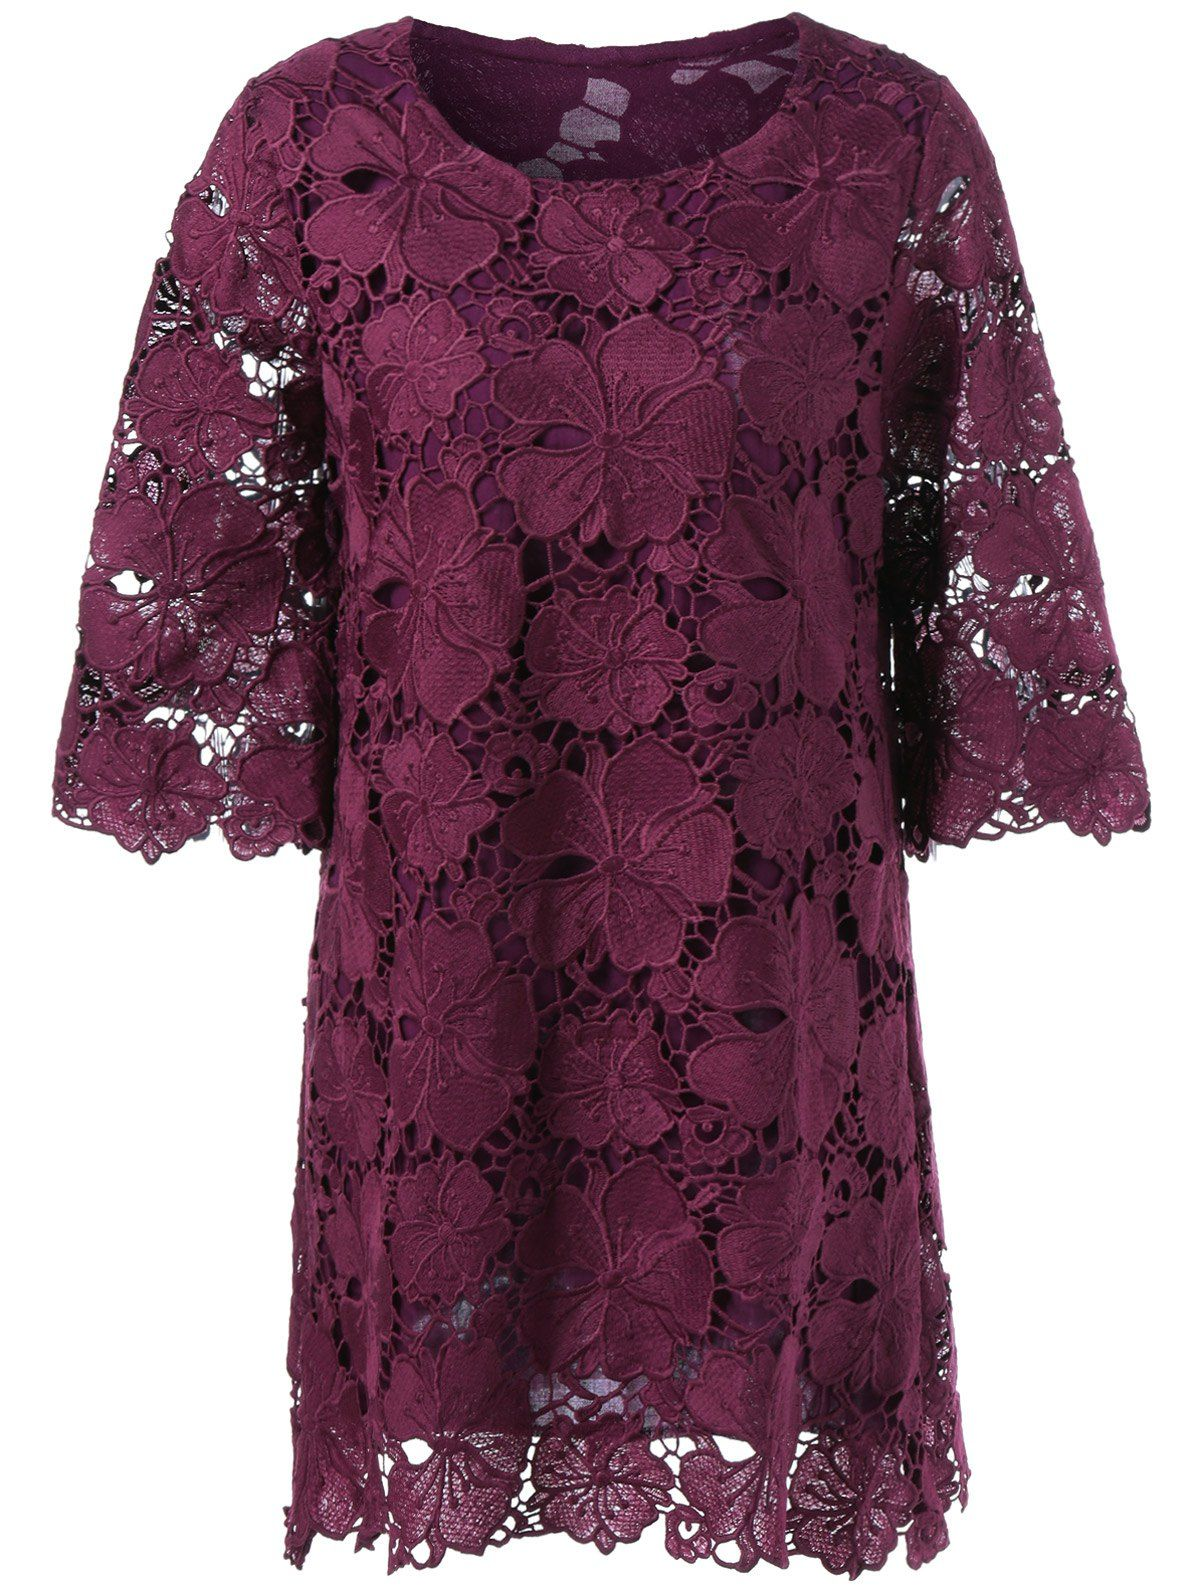 4d5b9646268 Floral Lace Overlay Sheer Mini Shift Dress in Dark Red